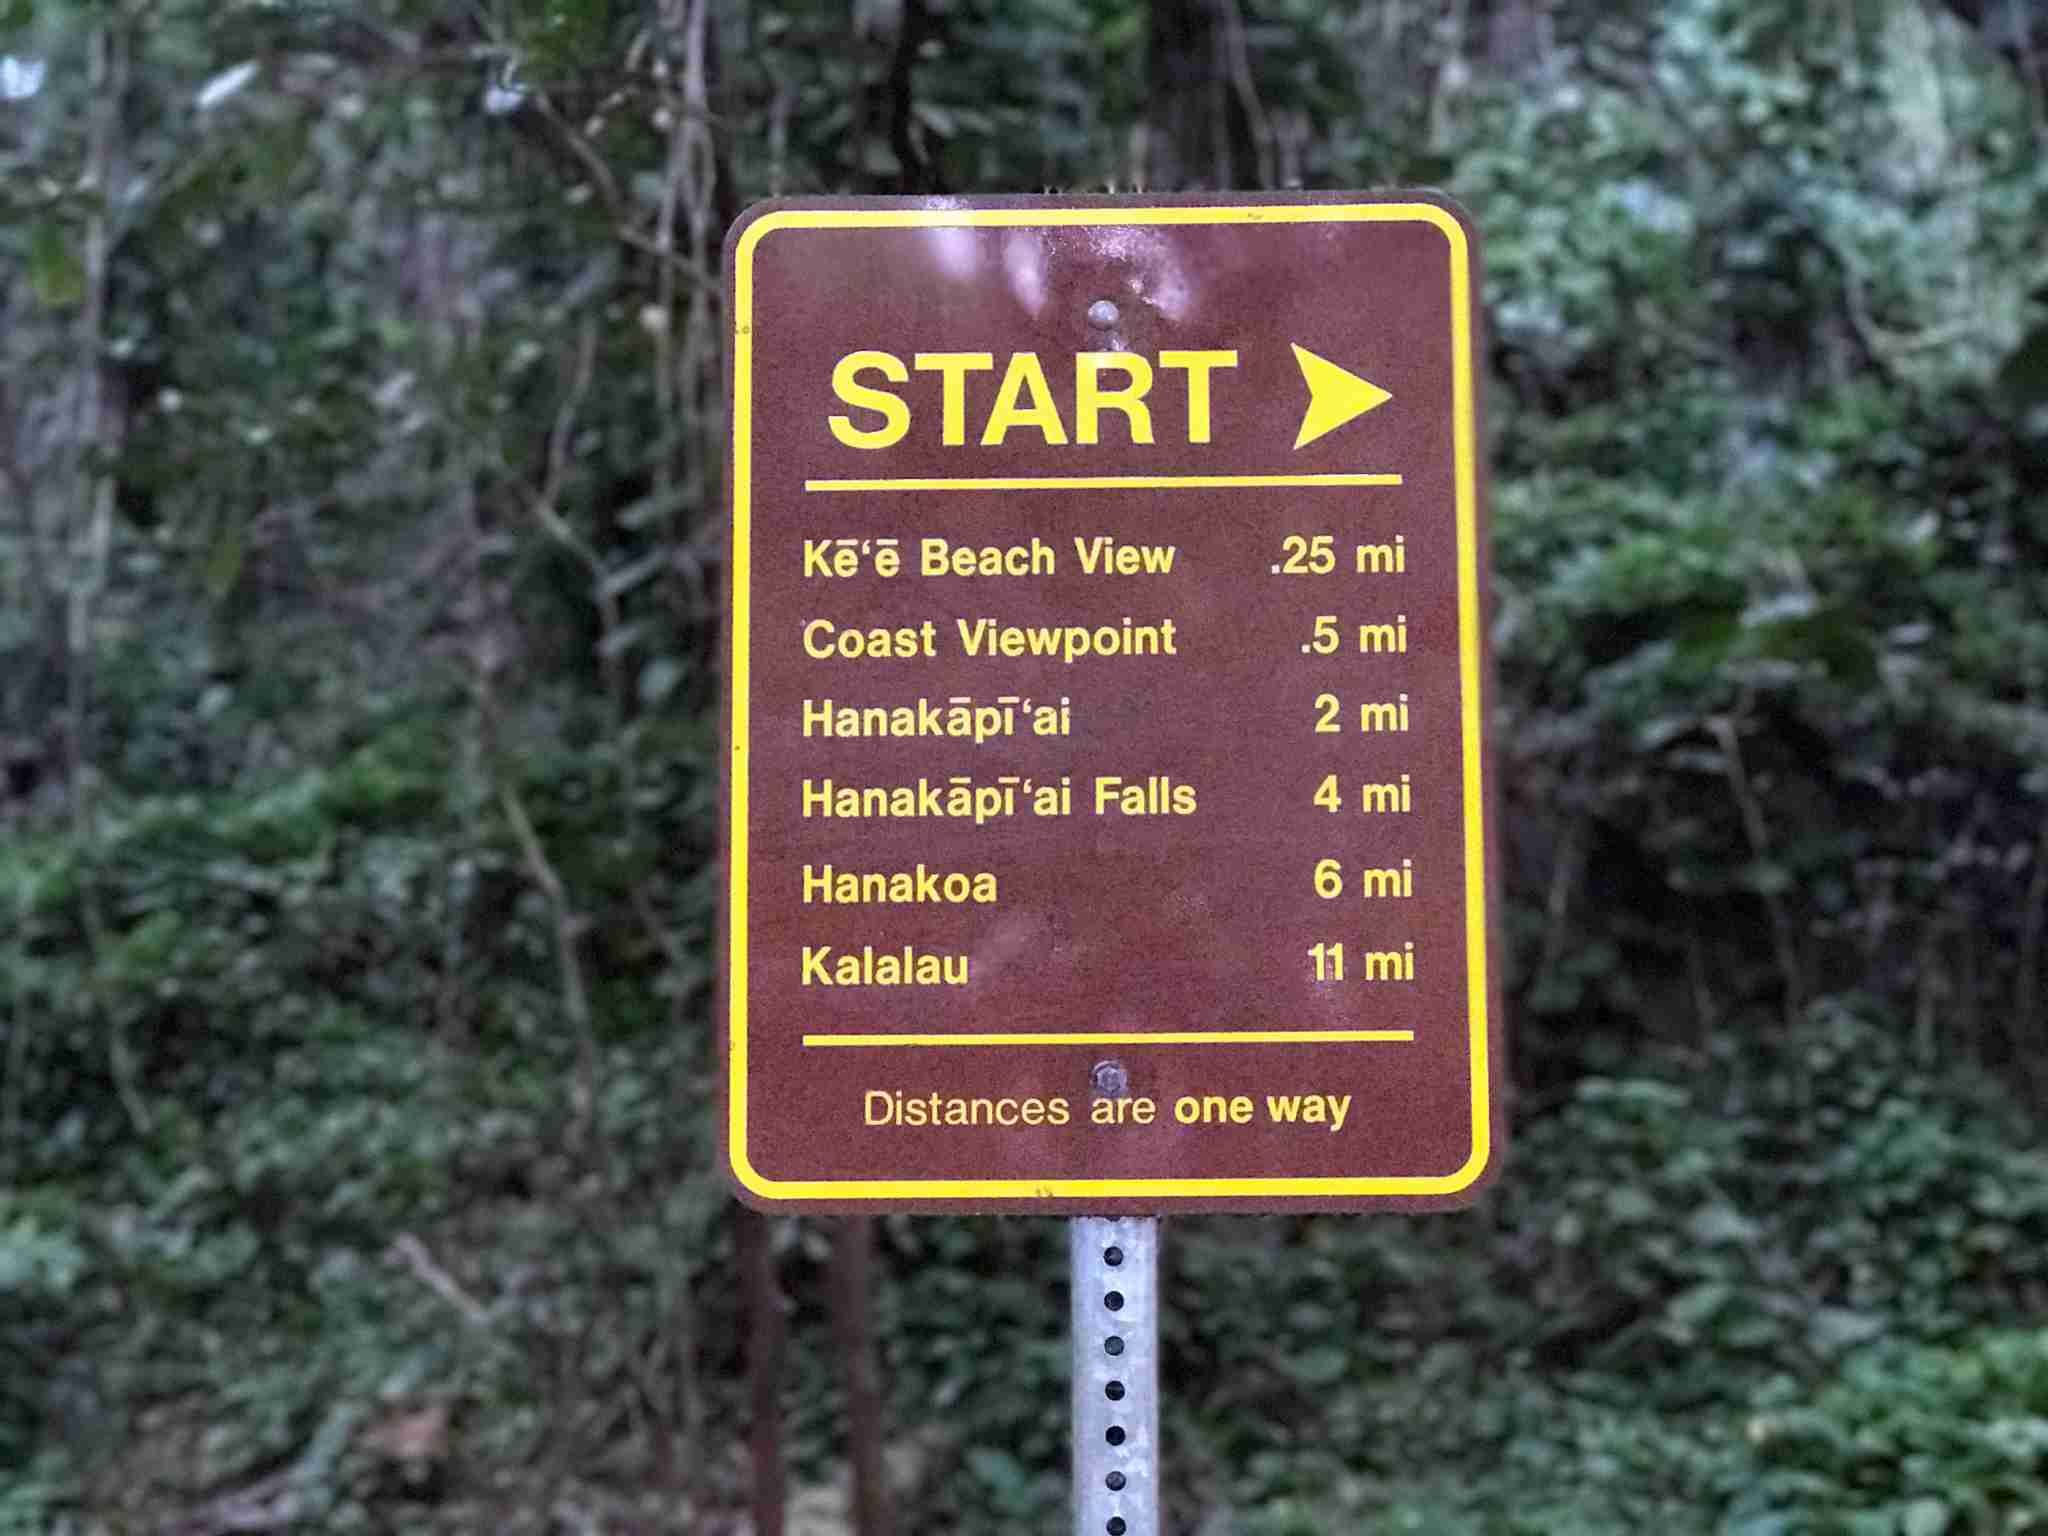 kauai-hawaii-kalalau-trail-trailhead-sign-hike-hiking-distances